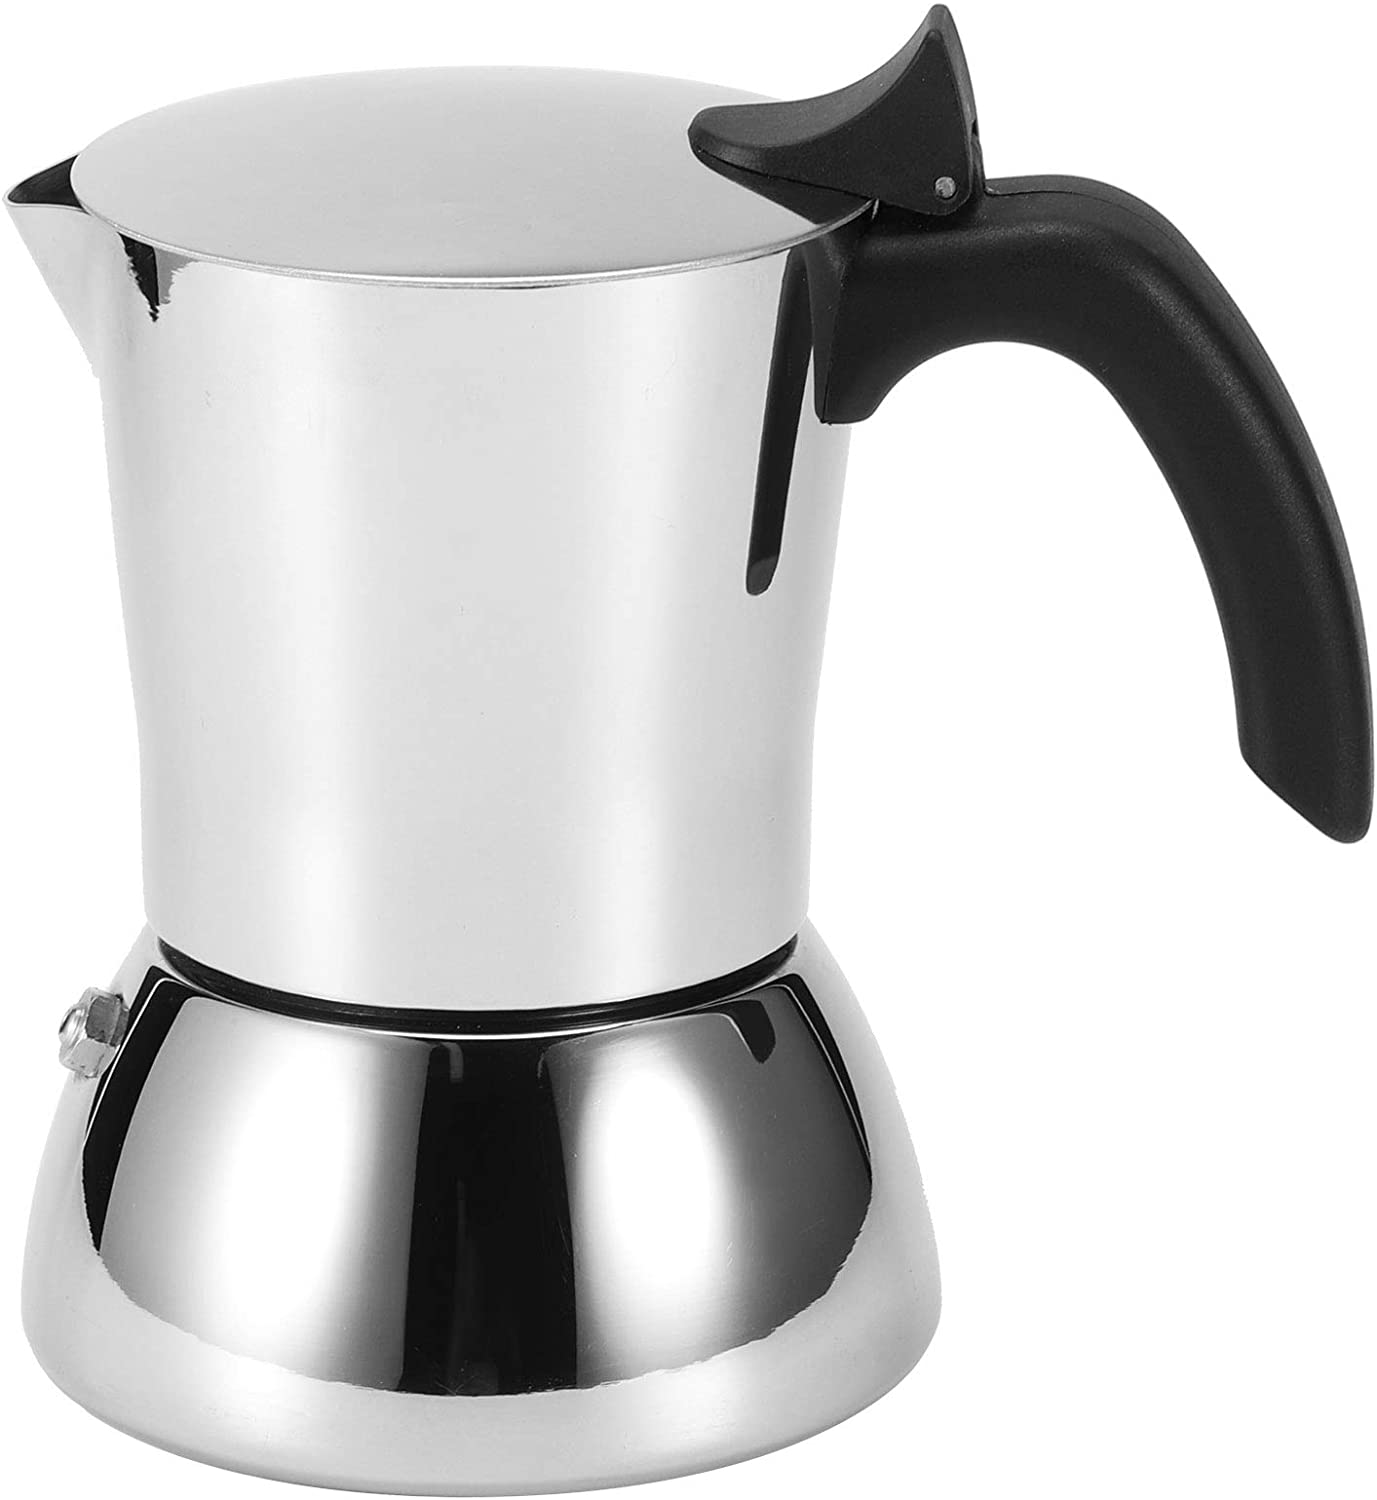 304 Stainless Max 78% OFF Steel Coffee Pot Maker 4 Kettle Cup Inventory cleanup selling sale